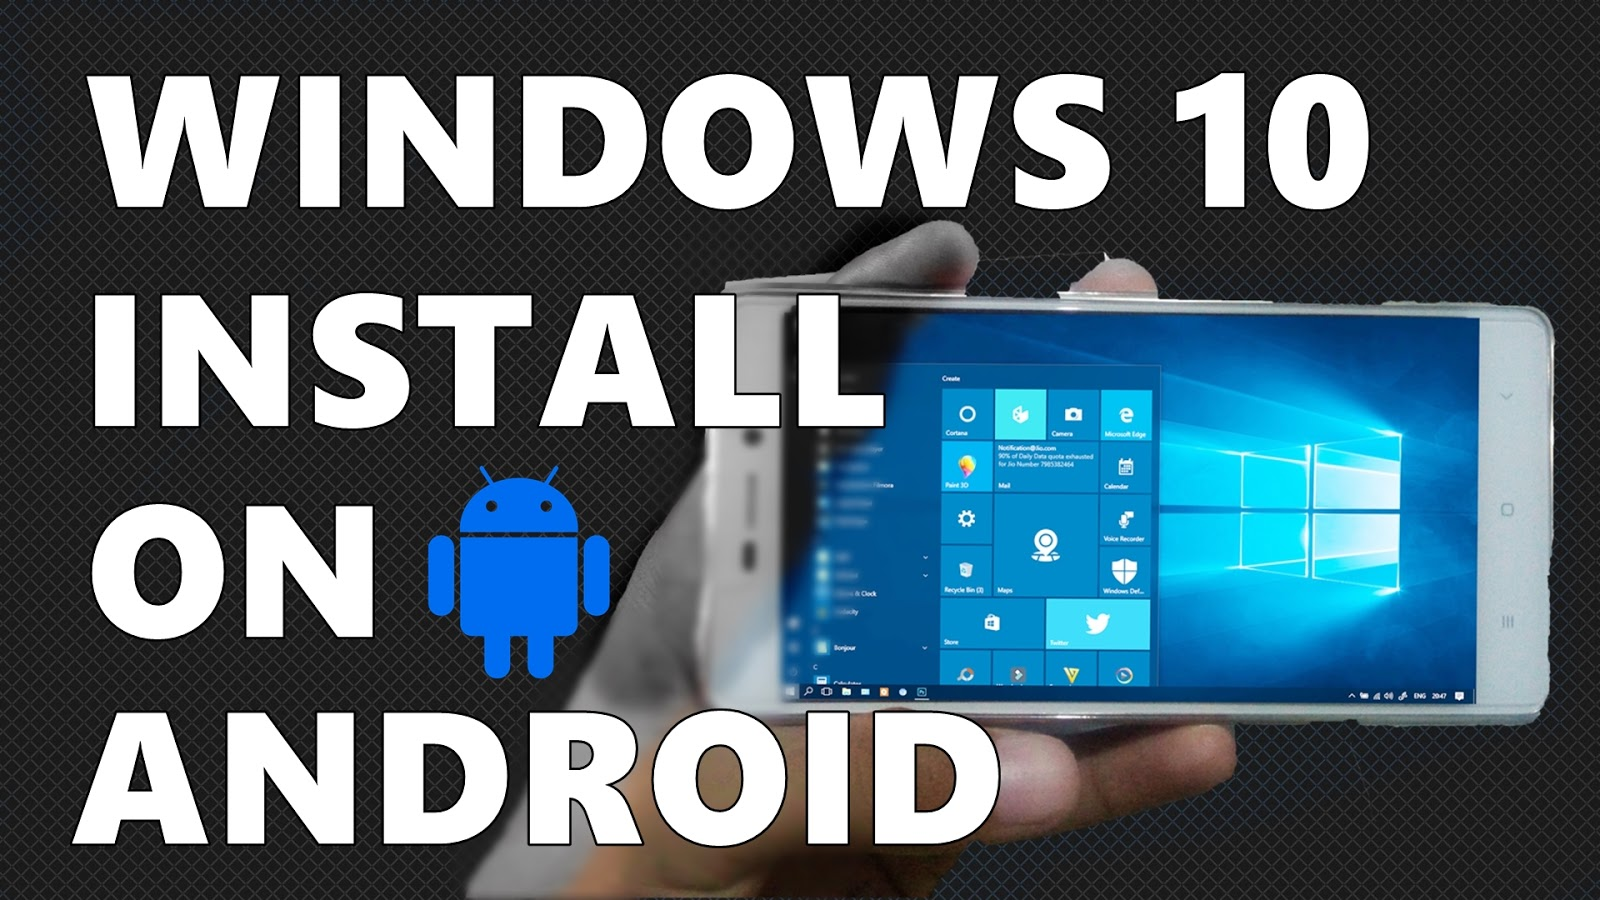 Windows  img file for Android - Oye Be Smartest